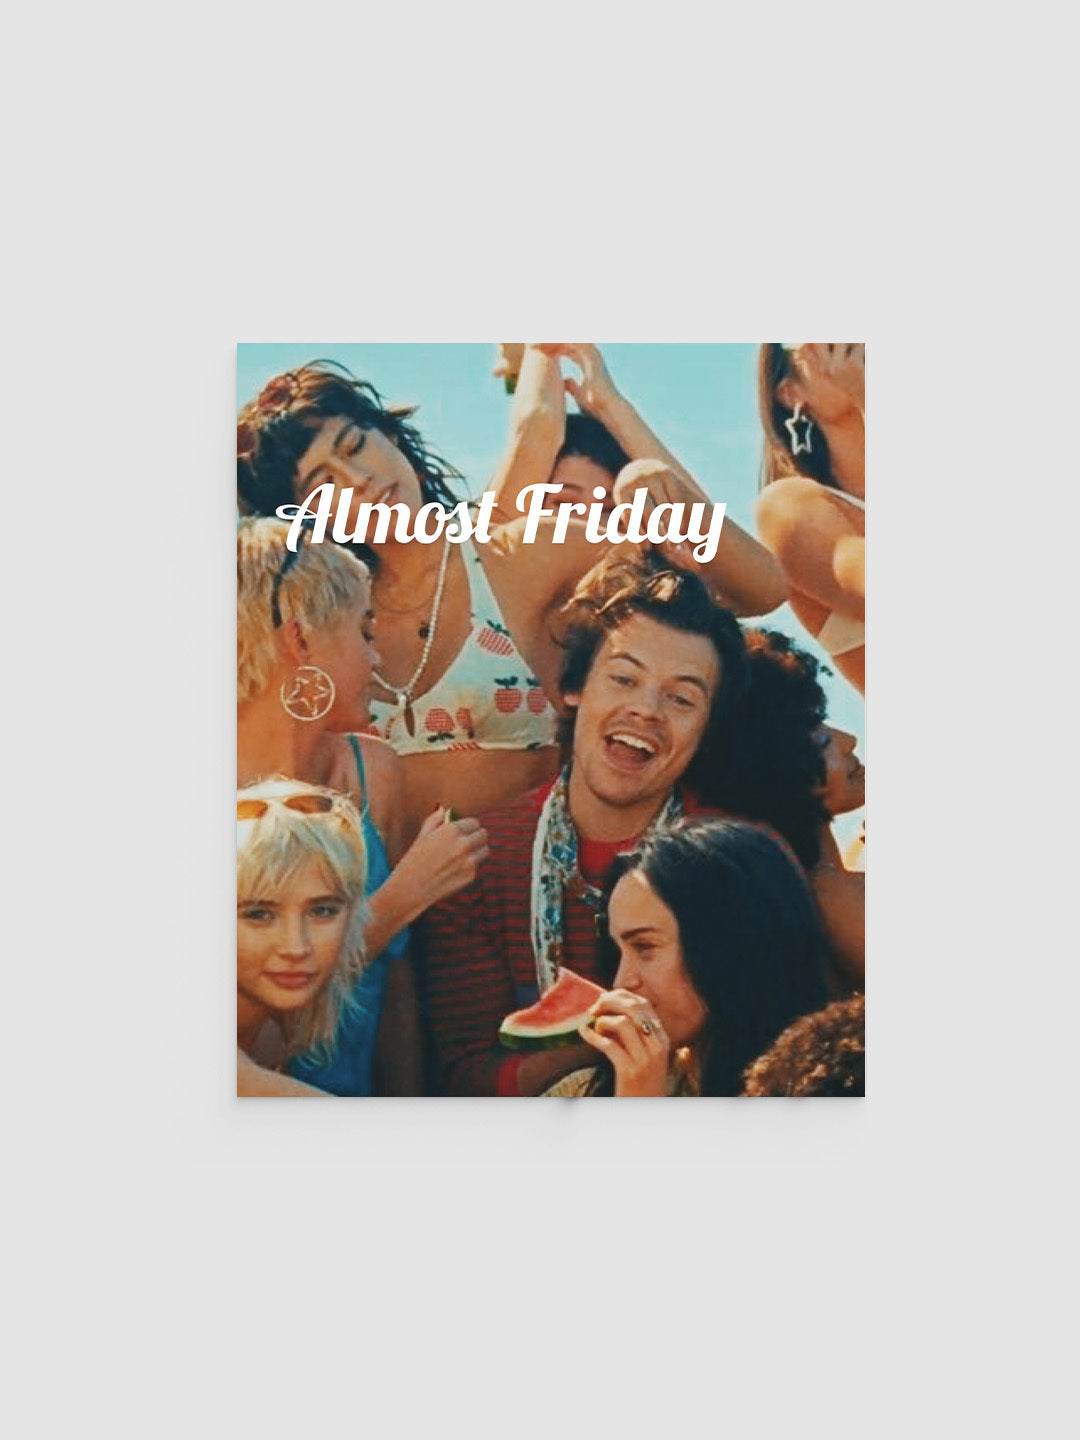 Almost Friday Watermelon Poster